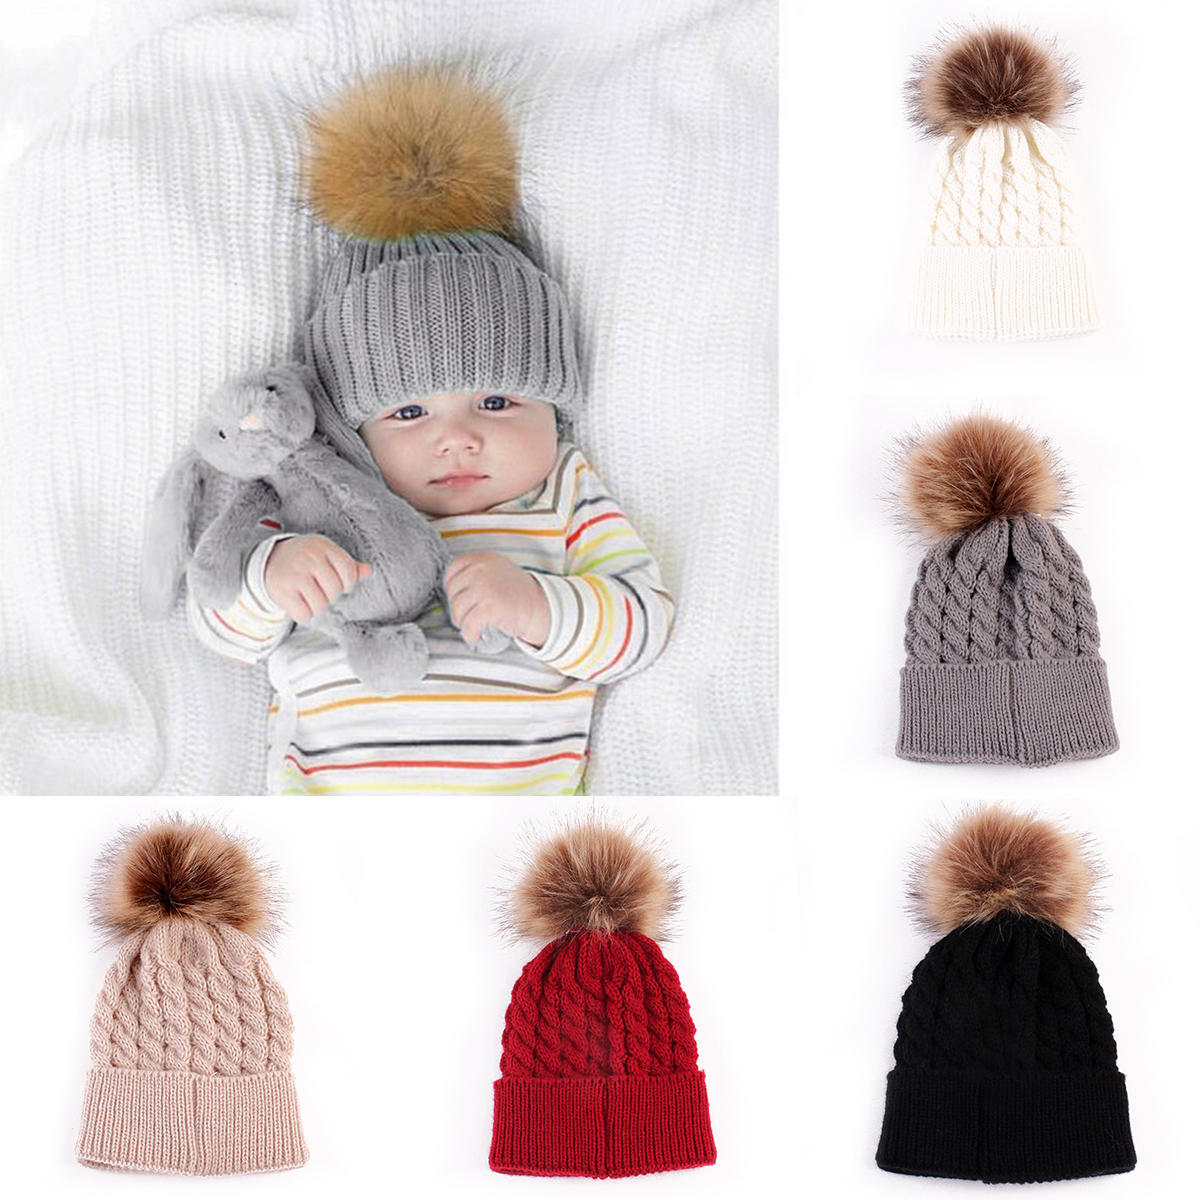 Baby Winter Beanie hat Warm Knit Crochet Caps Beanie Hat Toddler Kid Faux Fur prom prom Knit skullies ski Cap 0-3 years hot winter beanie knit crochet ski hat plicate baggy oversized slouch unisex cap